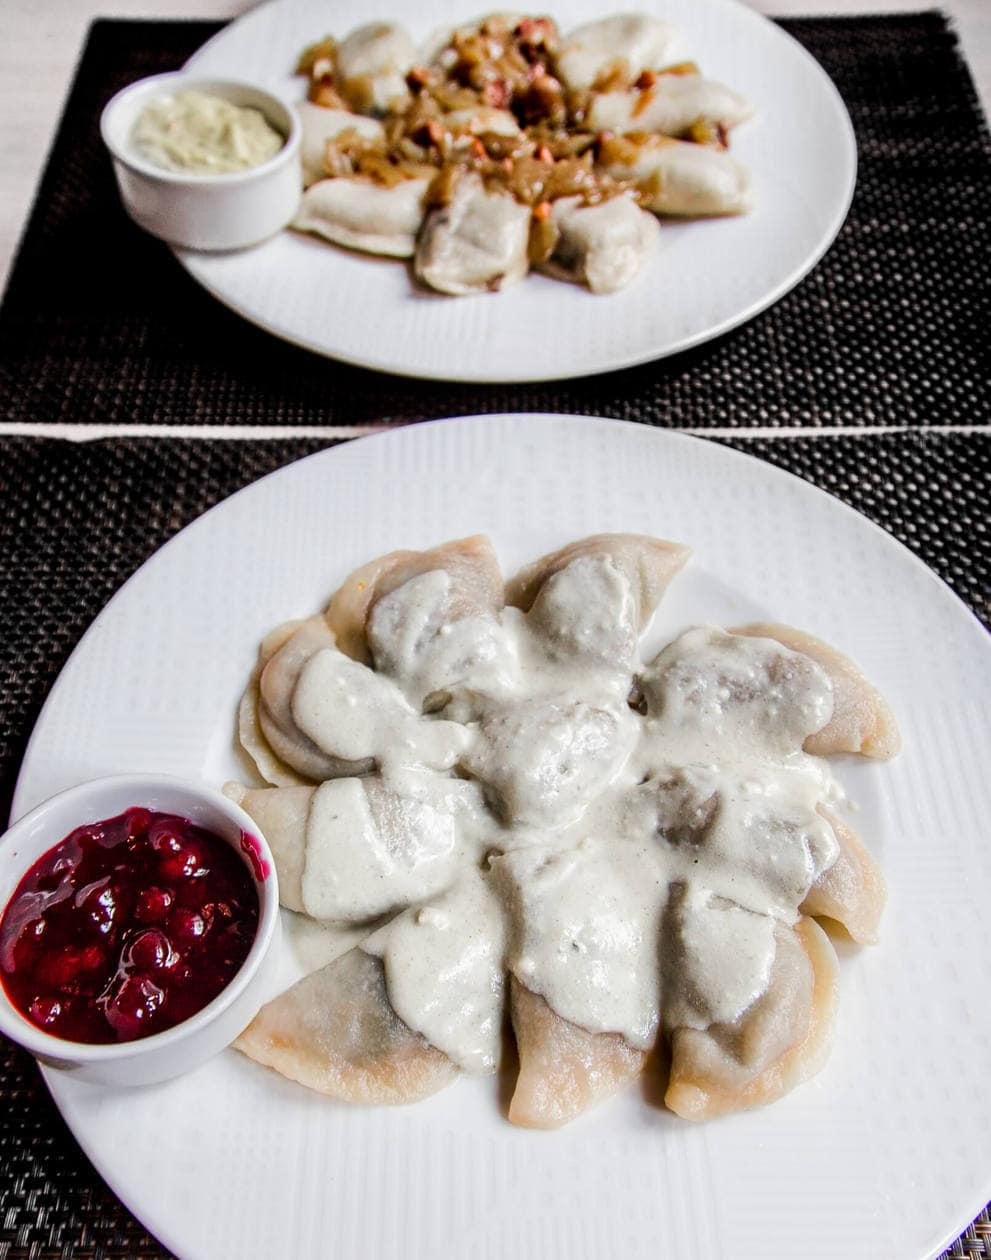 Pierogi is a traditional Polish food that's been around since the 13th century, and it's one of country's national dishes. These sweet & savory dumplings are a must try food in Poland, and Pierogarnia Mandu is known for having the best pierogi in Gdansk. Click now to read all about Polish pierogi and the most popular Pierogarnia in Gdansk.